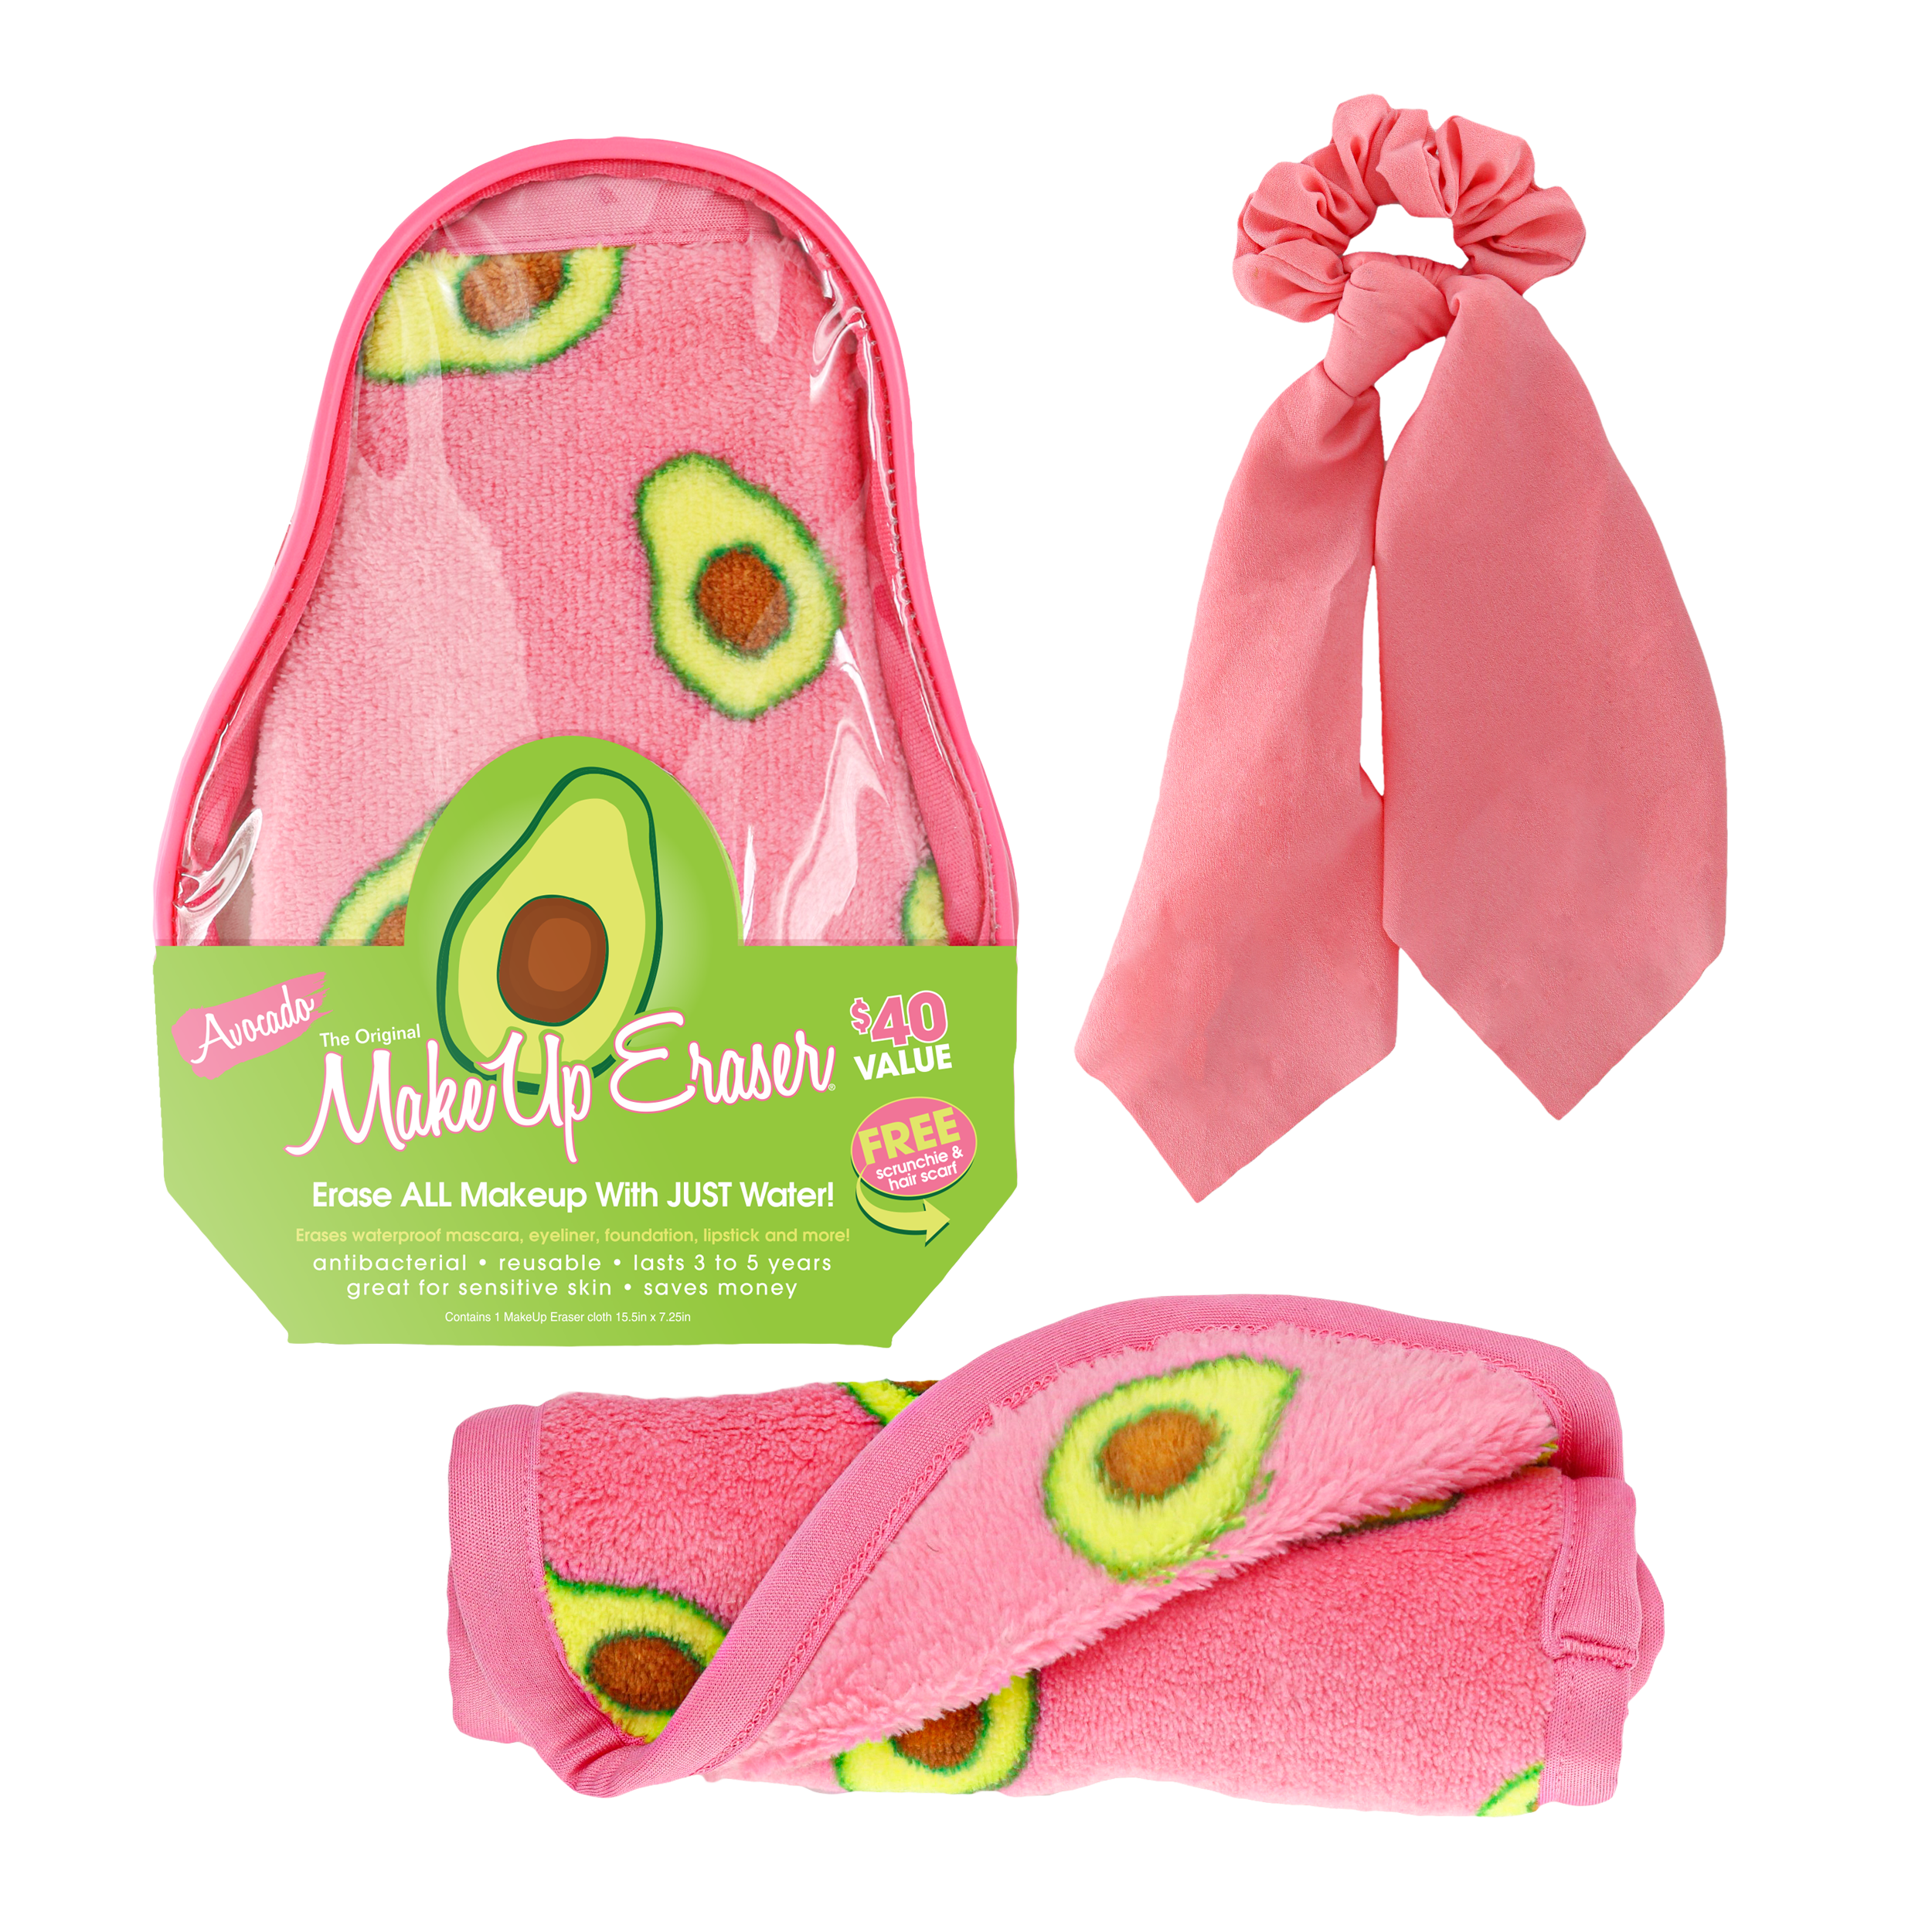 1 full size Avocado Print MakeUp Eraser, 1 scrunchie with detachable hair scarf and 1 reusable makeup bag